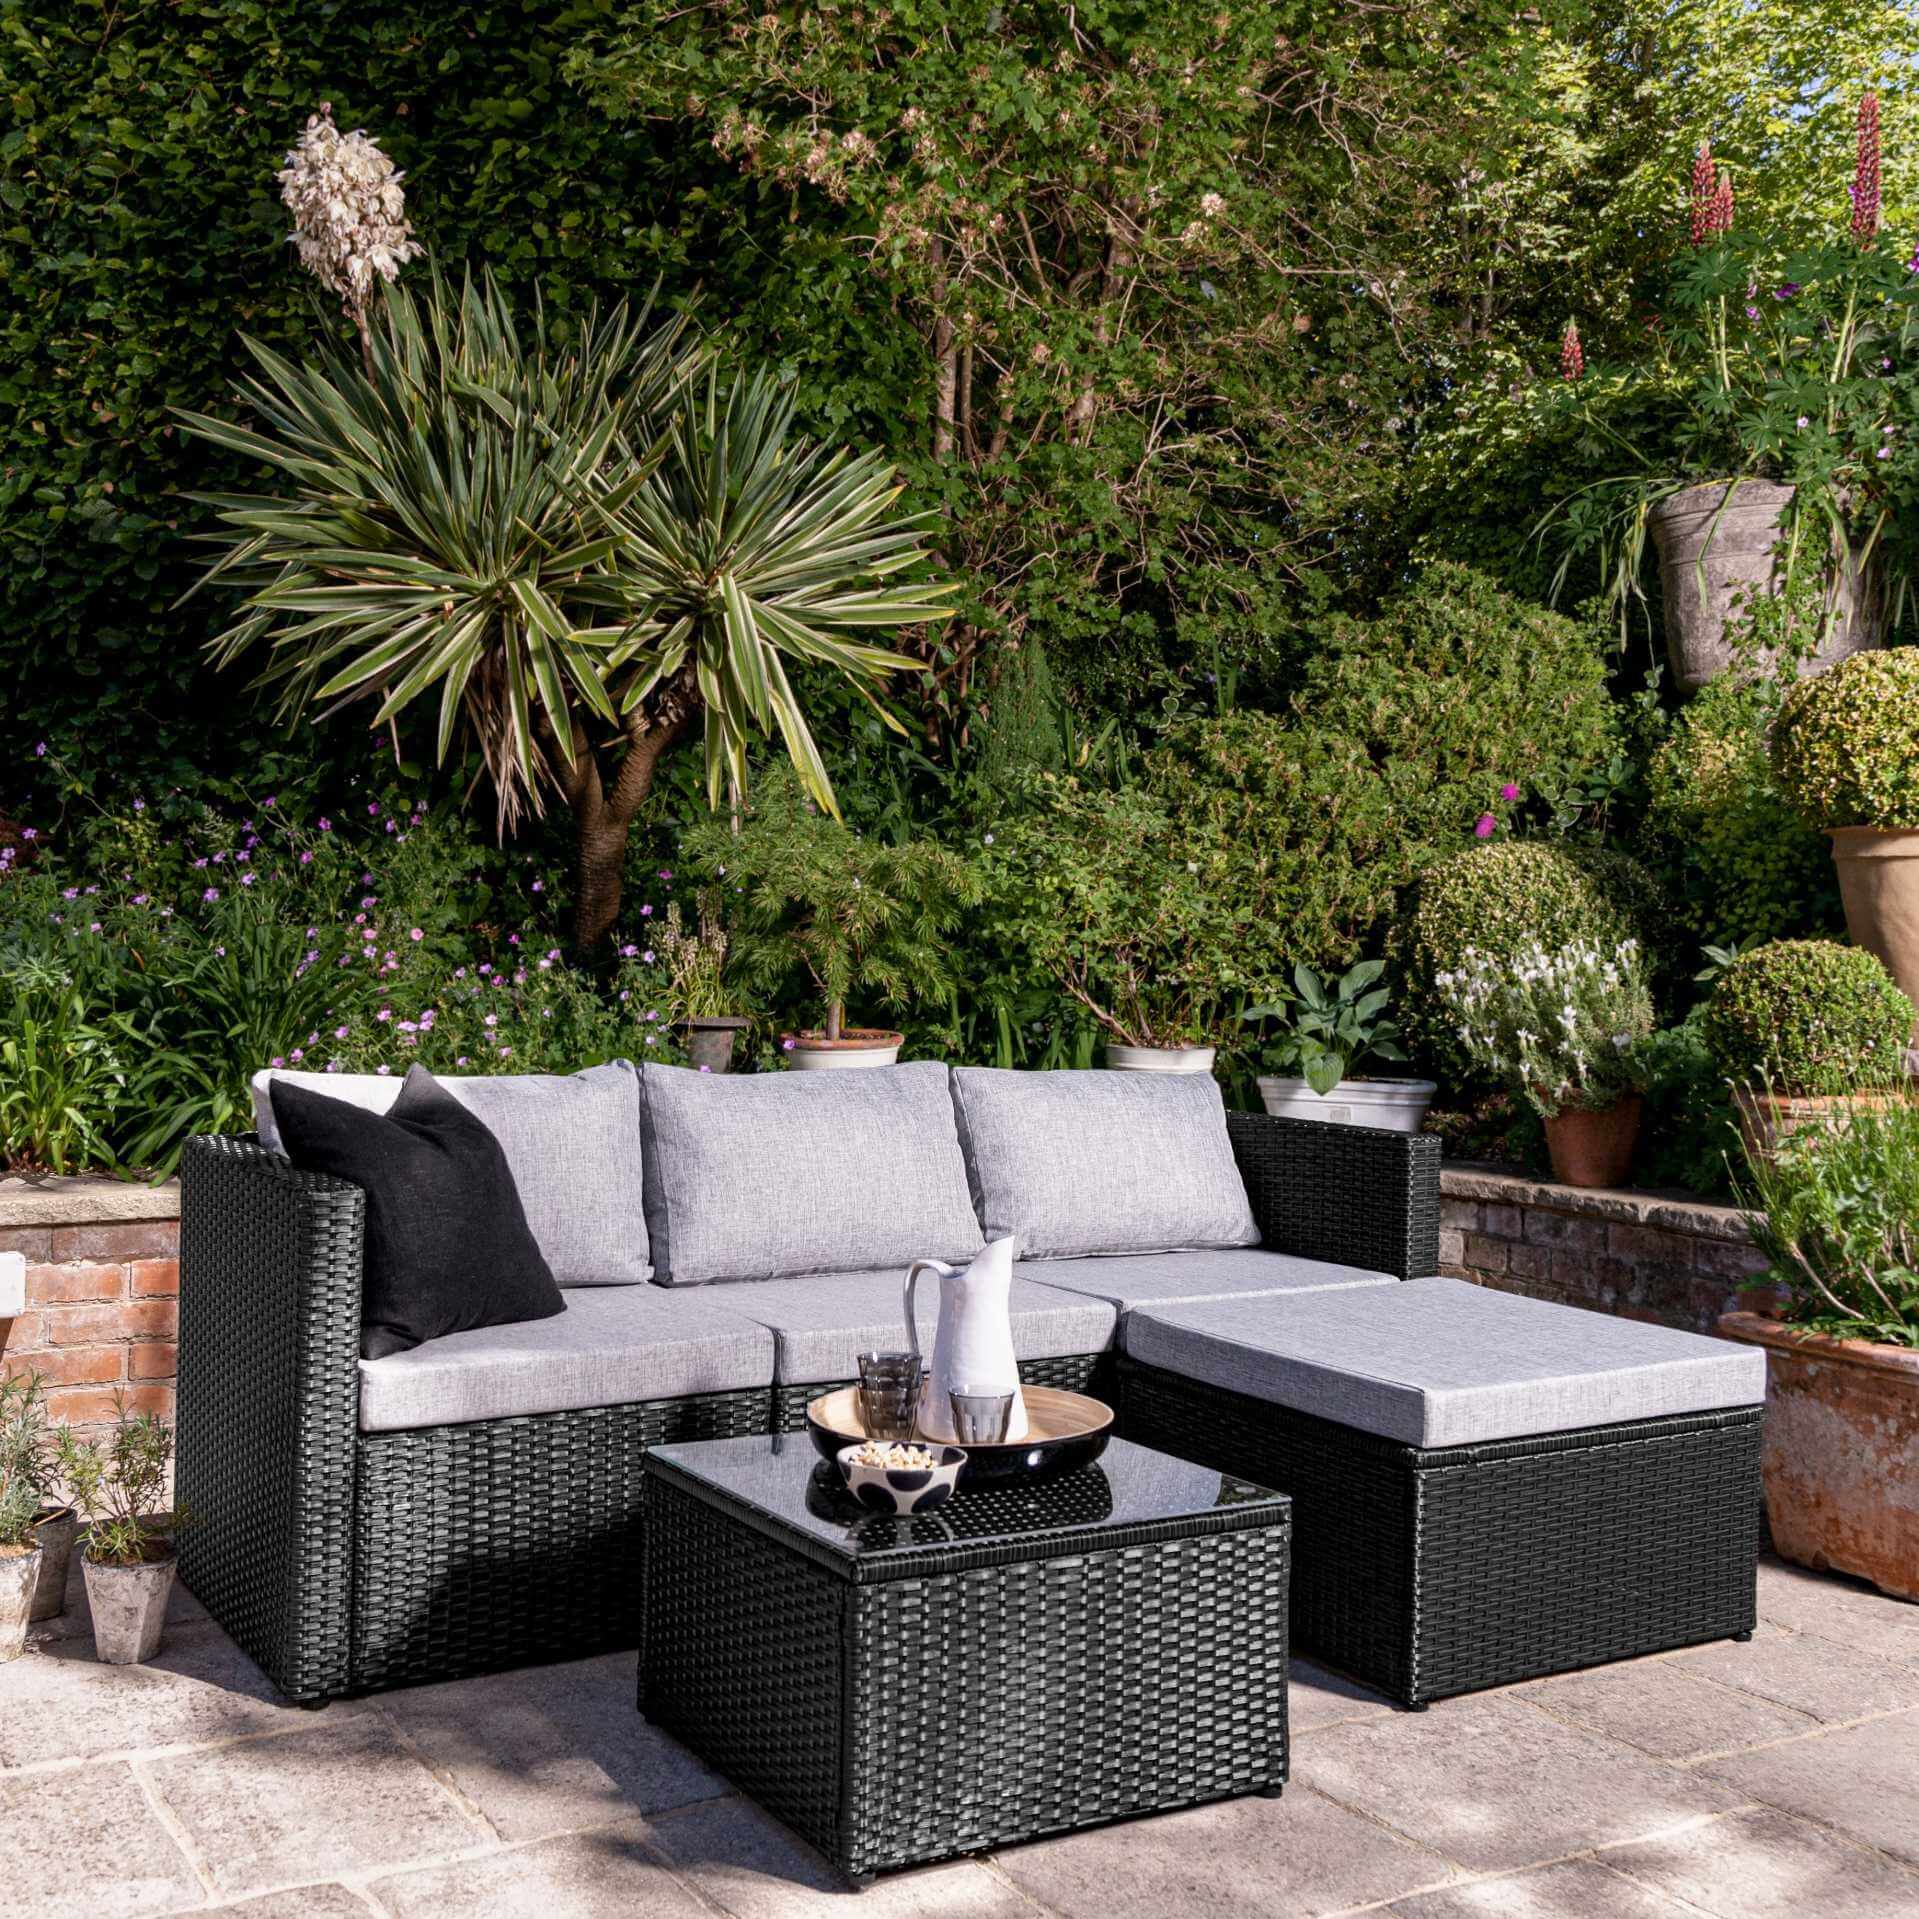 4 Seater Rattan Corner Sofa Set - Black Weave - Laura James